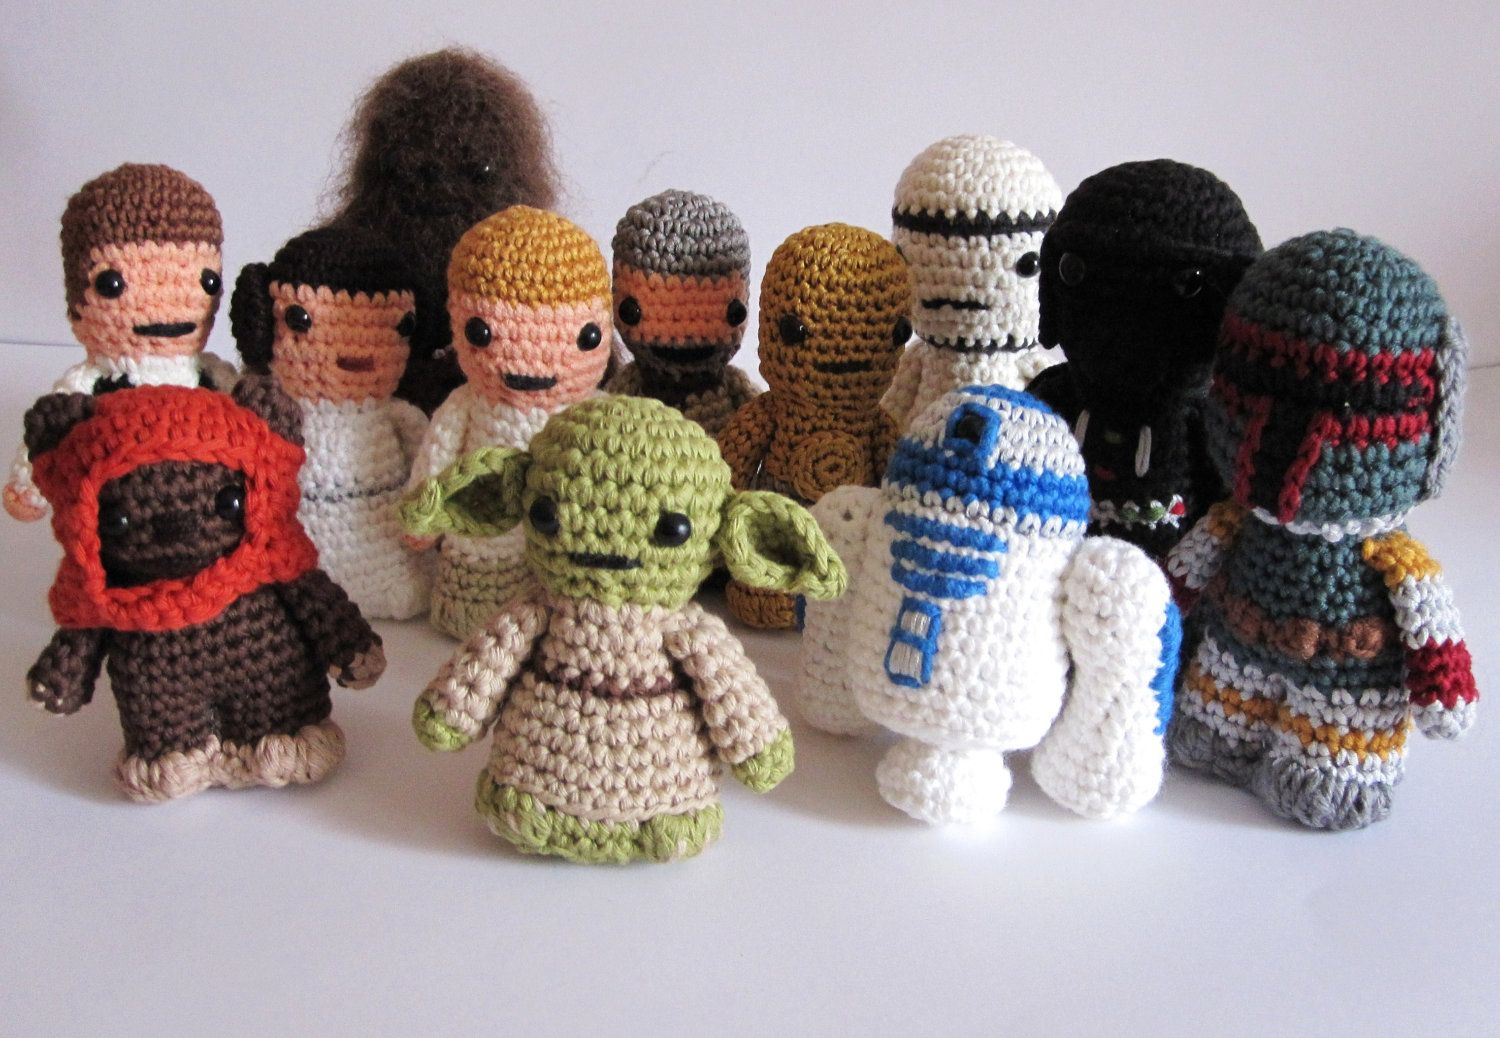 Amigurumi Star Wars Patterns : Crochet star wars characters pattern image collections knitting